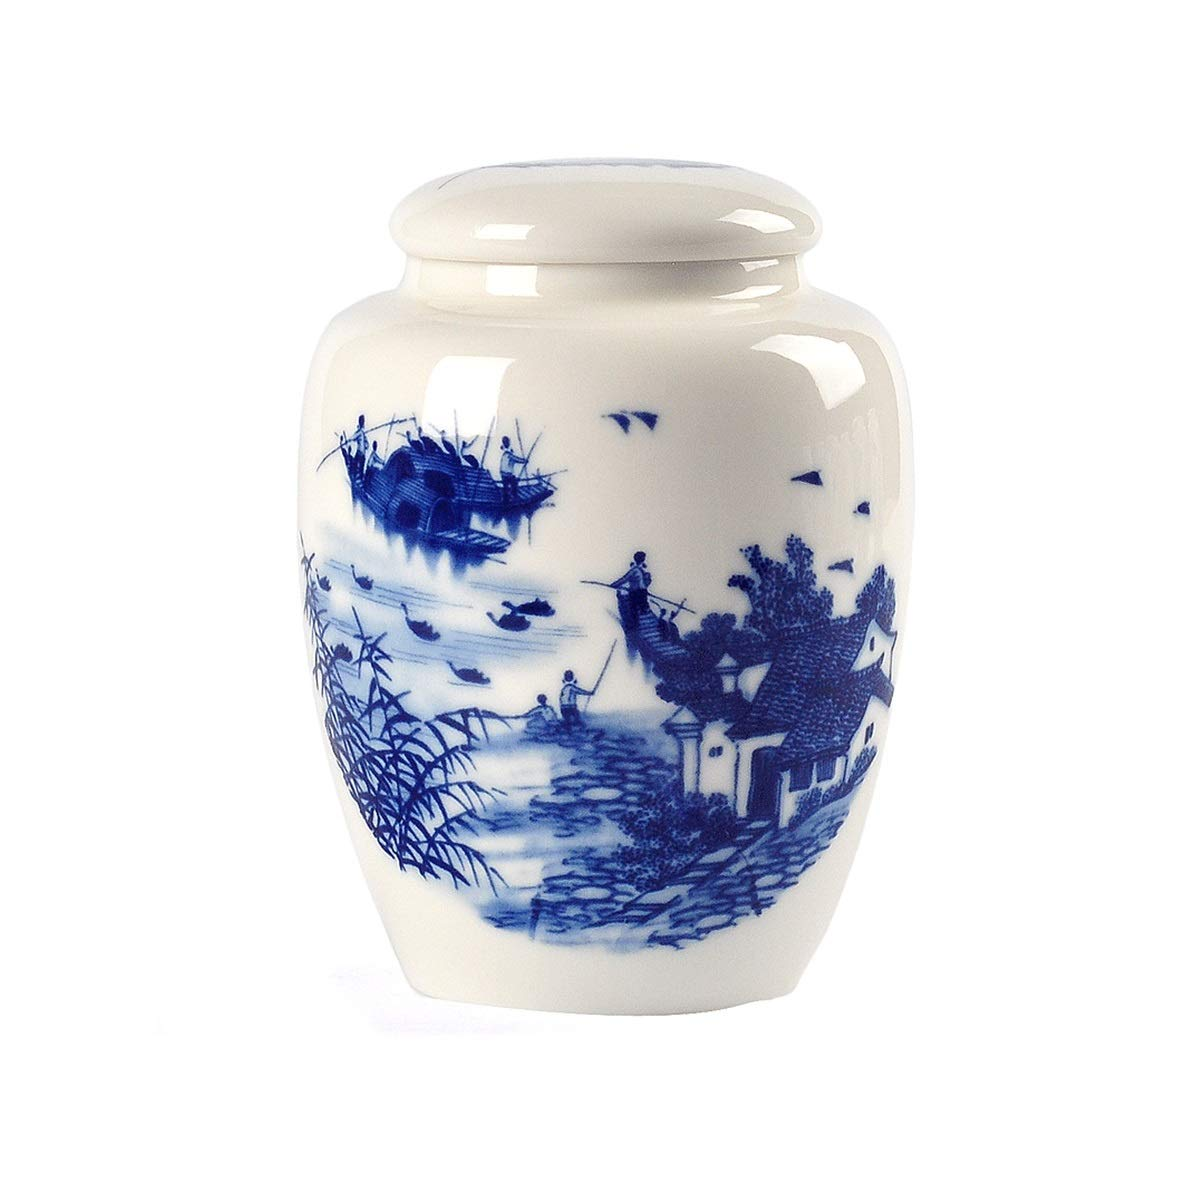 B 11.811.8cmHengtongtongxun Pet Urn,Cremation Urns for Pets,Functional Urn,Ceramic Sealed,Keepsake Box for Dogs and Cats,Tea Can,Artwork,Home Decoration,11.8  11.8cm Soul Place (Size   11.8  11.8cm, Style   F)